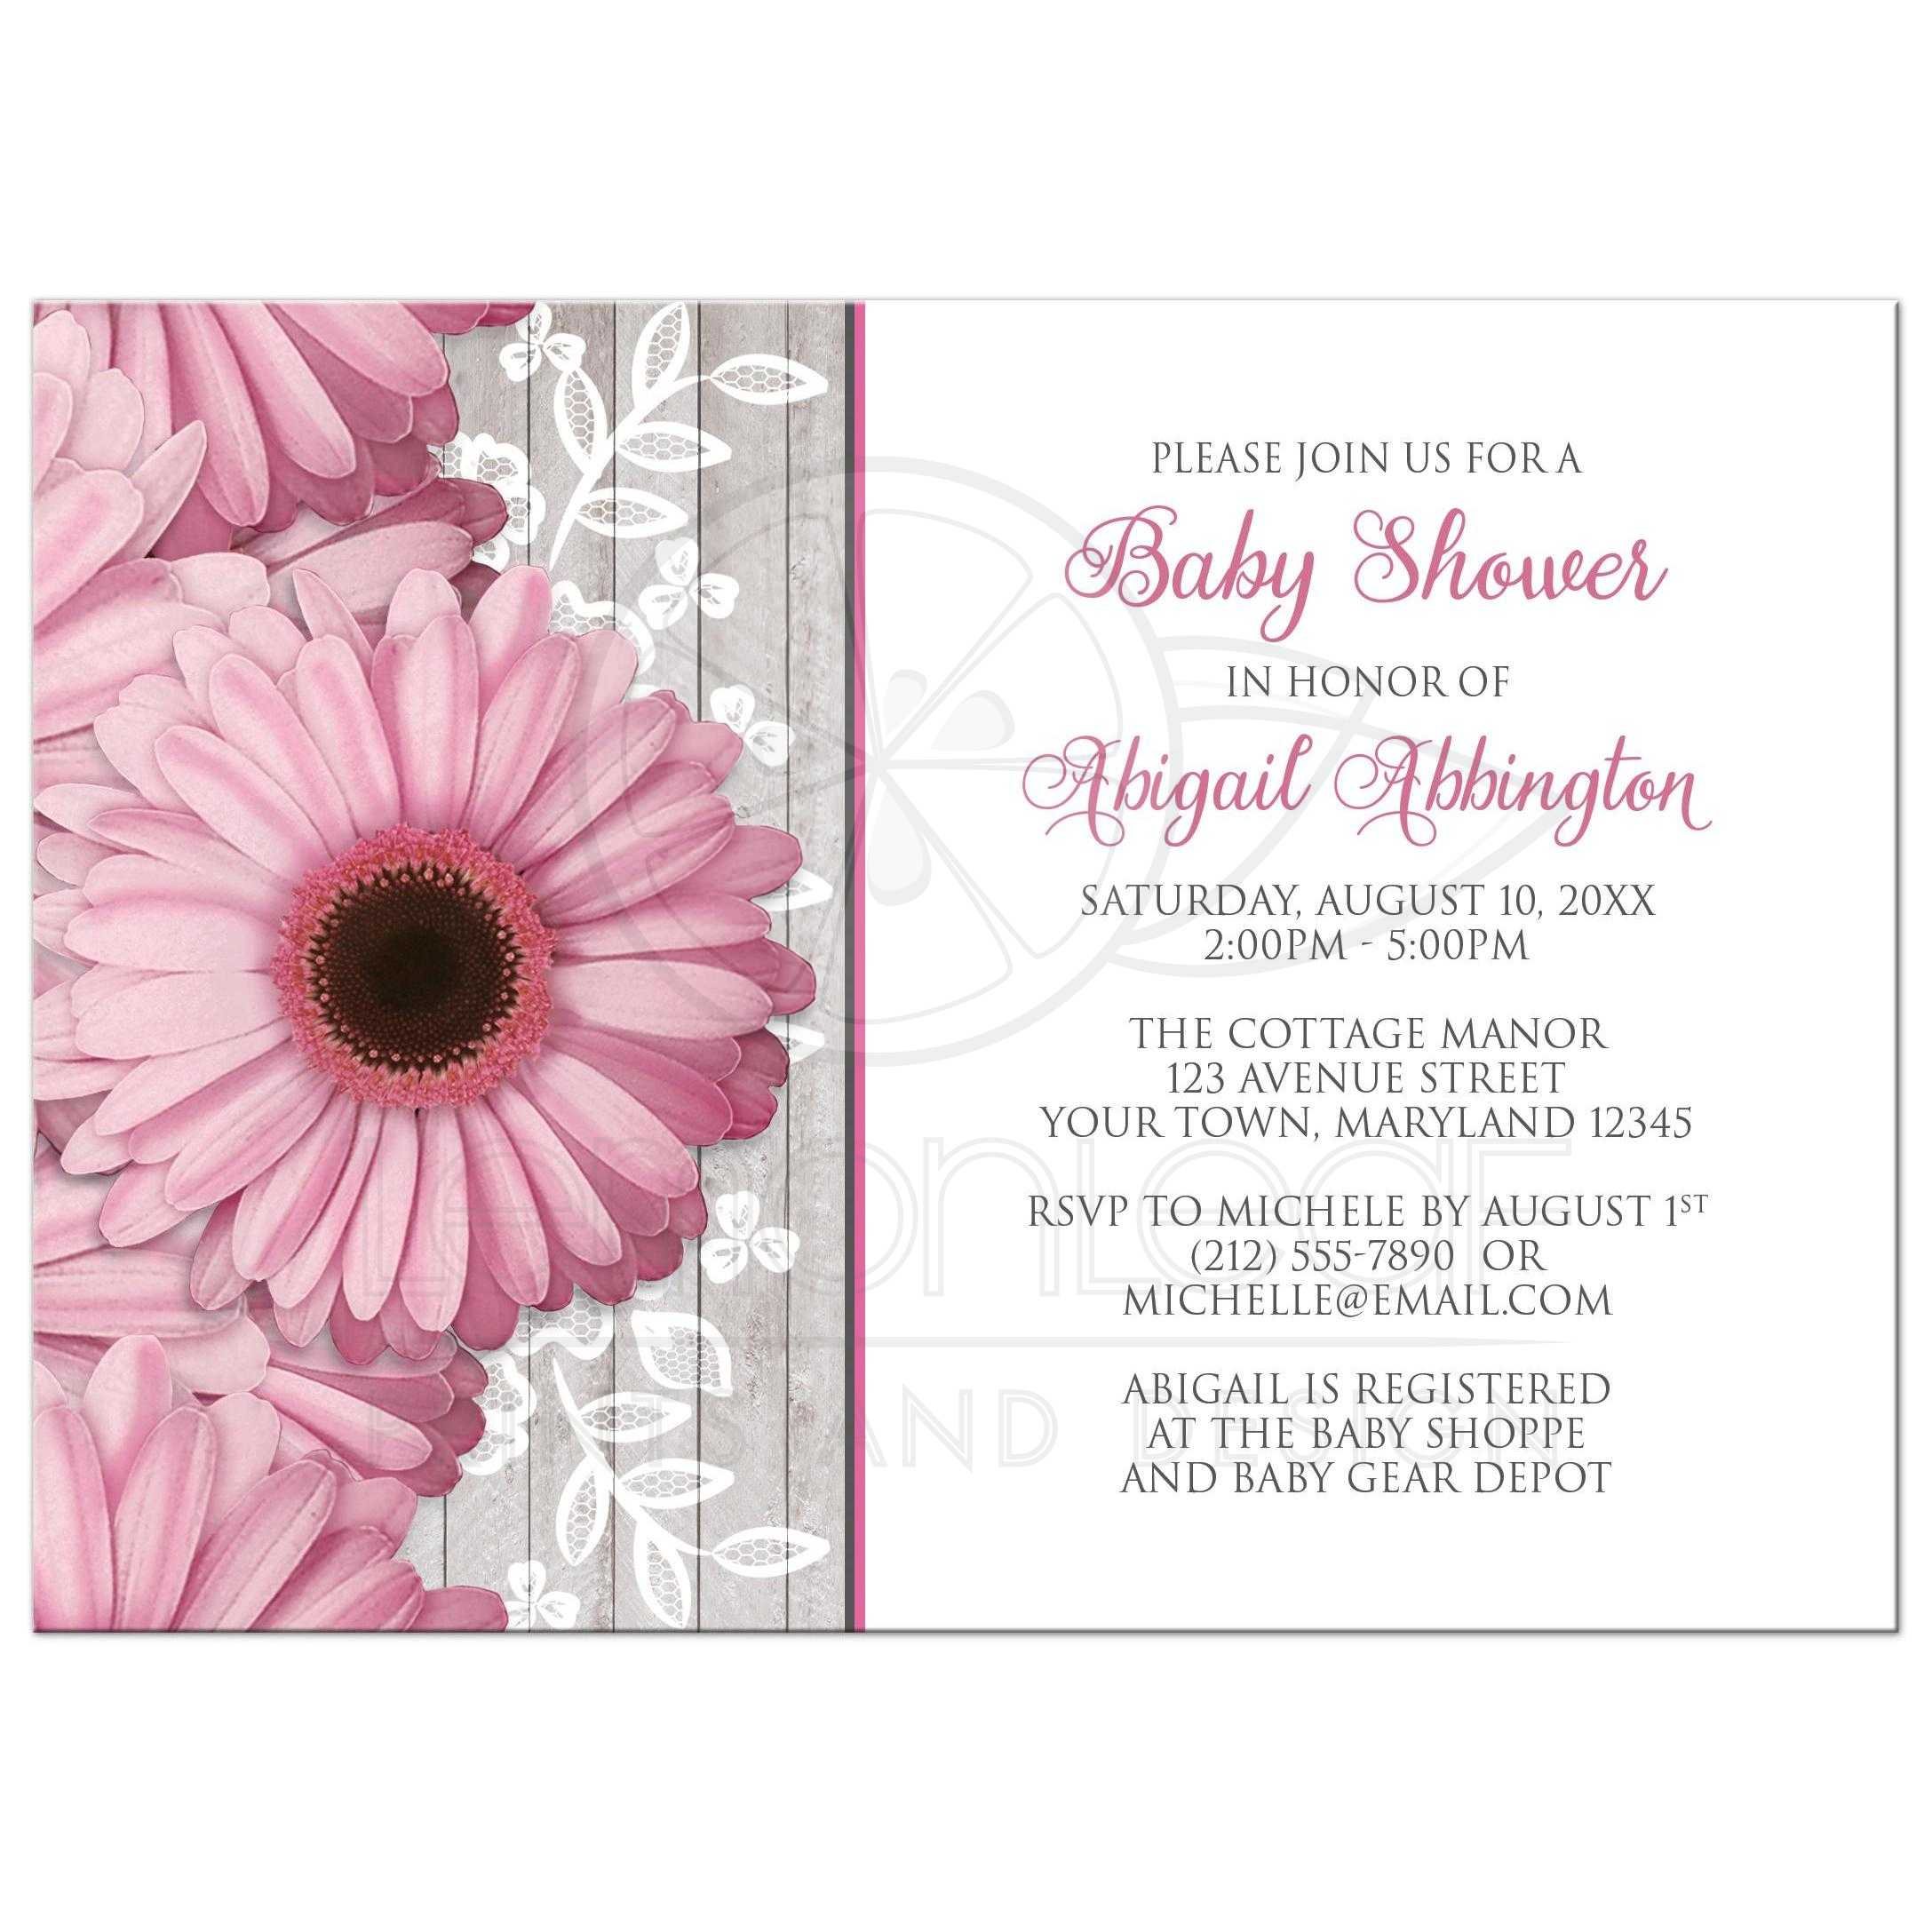 Baby shower invitations rustic pink daisy wood white filmwisefo